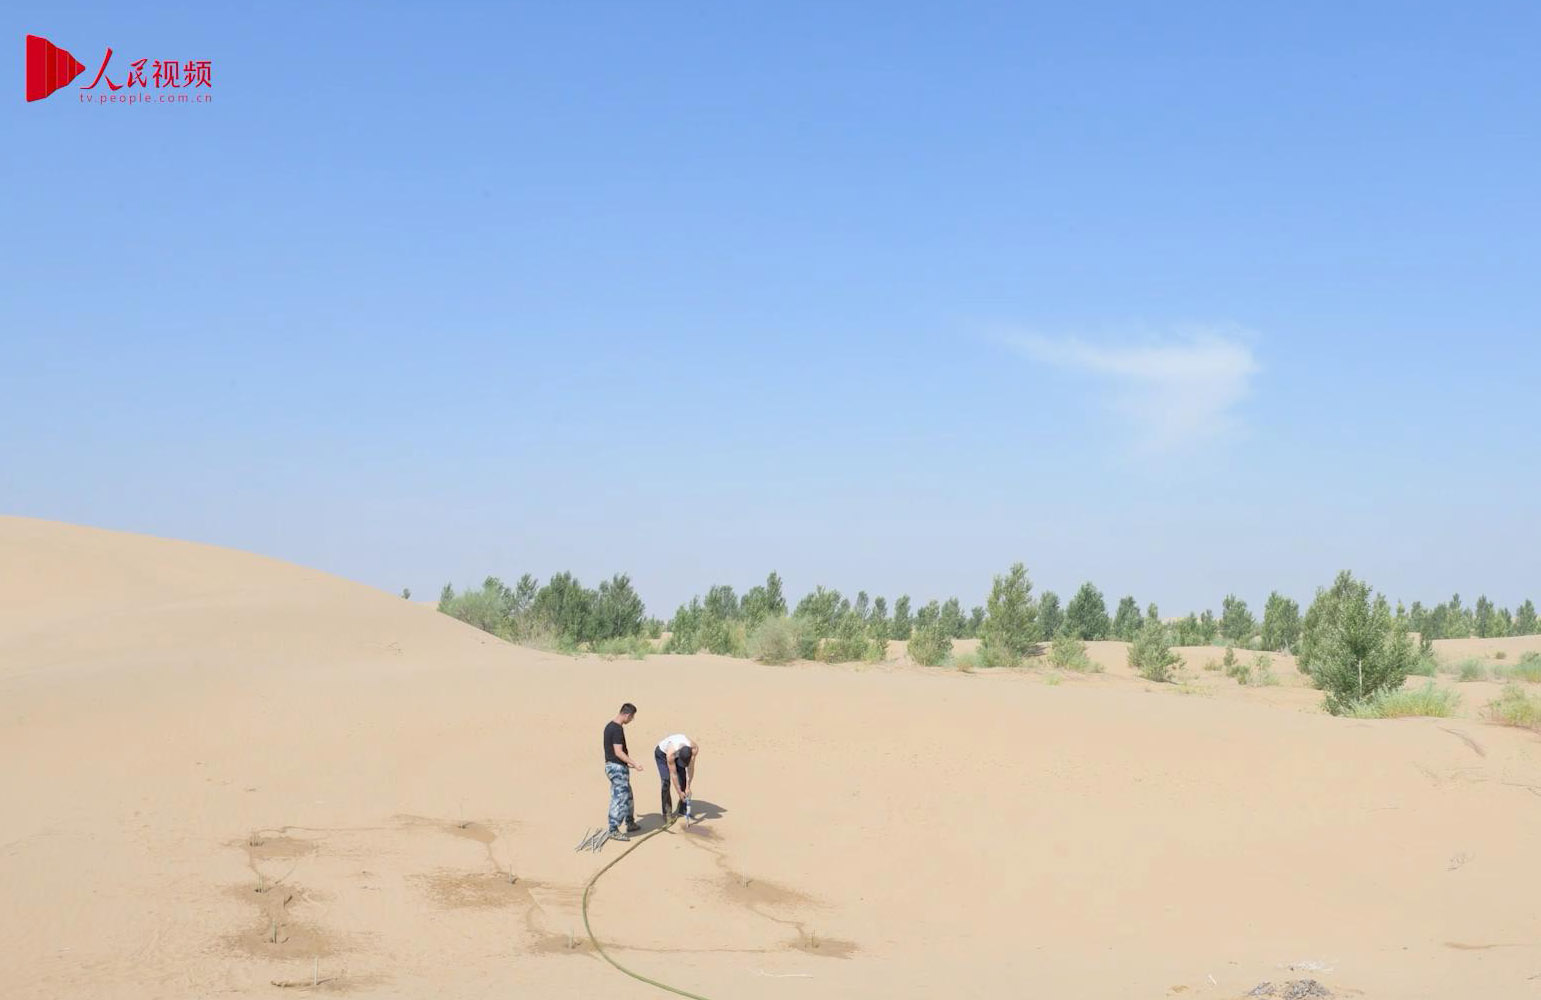 Guardians of China's desert can plant trees in just 10